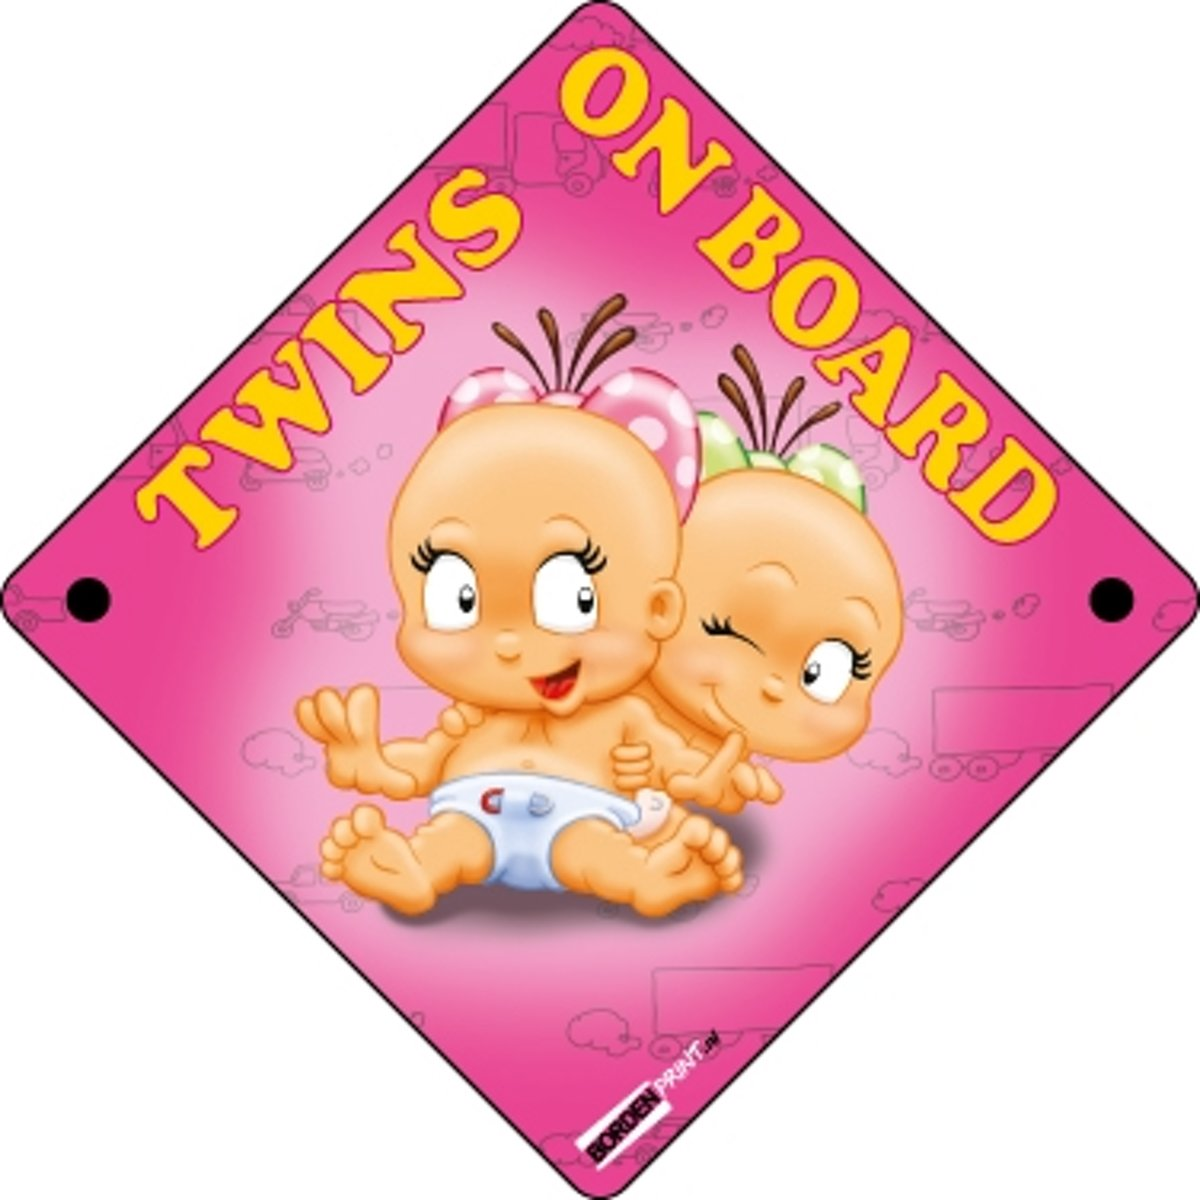 Twins on Board, Roze, Meisjes